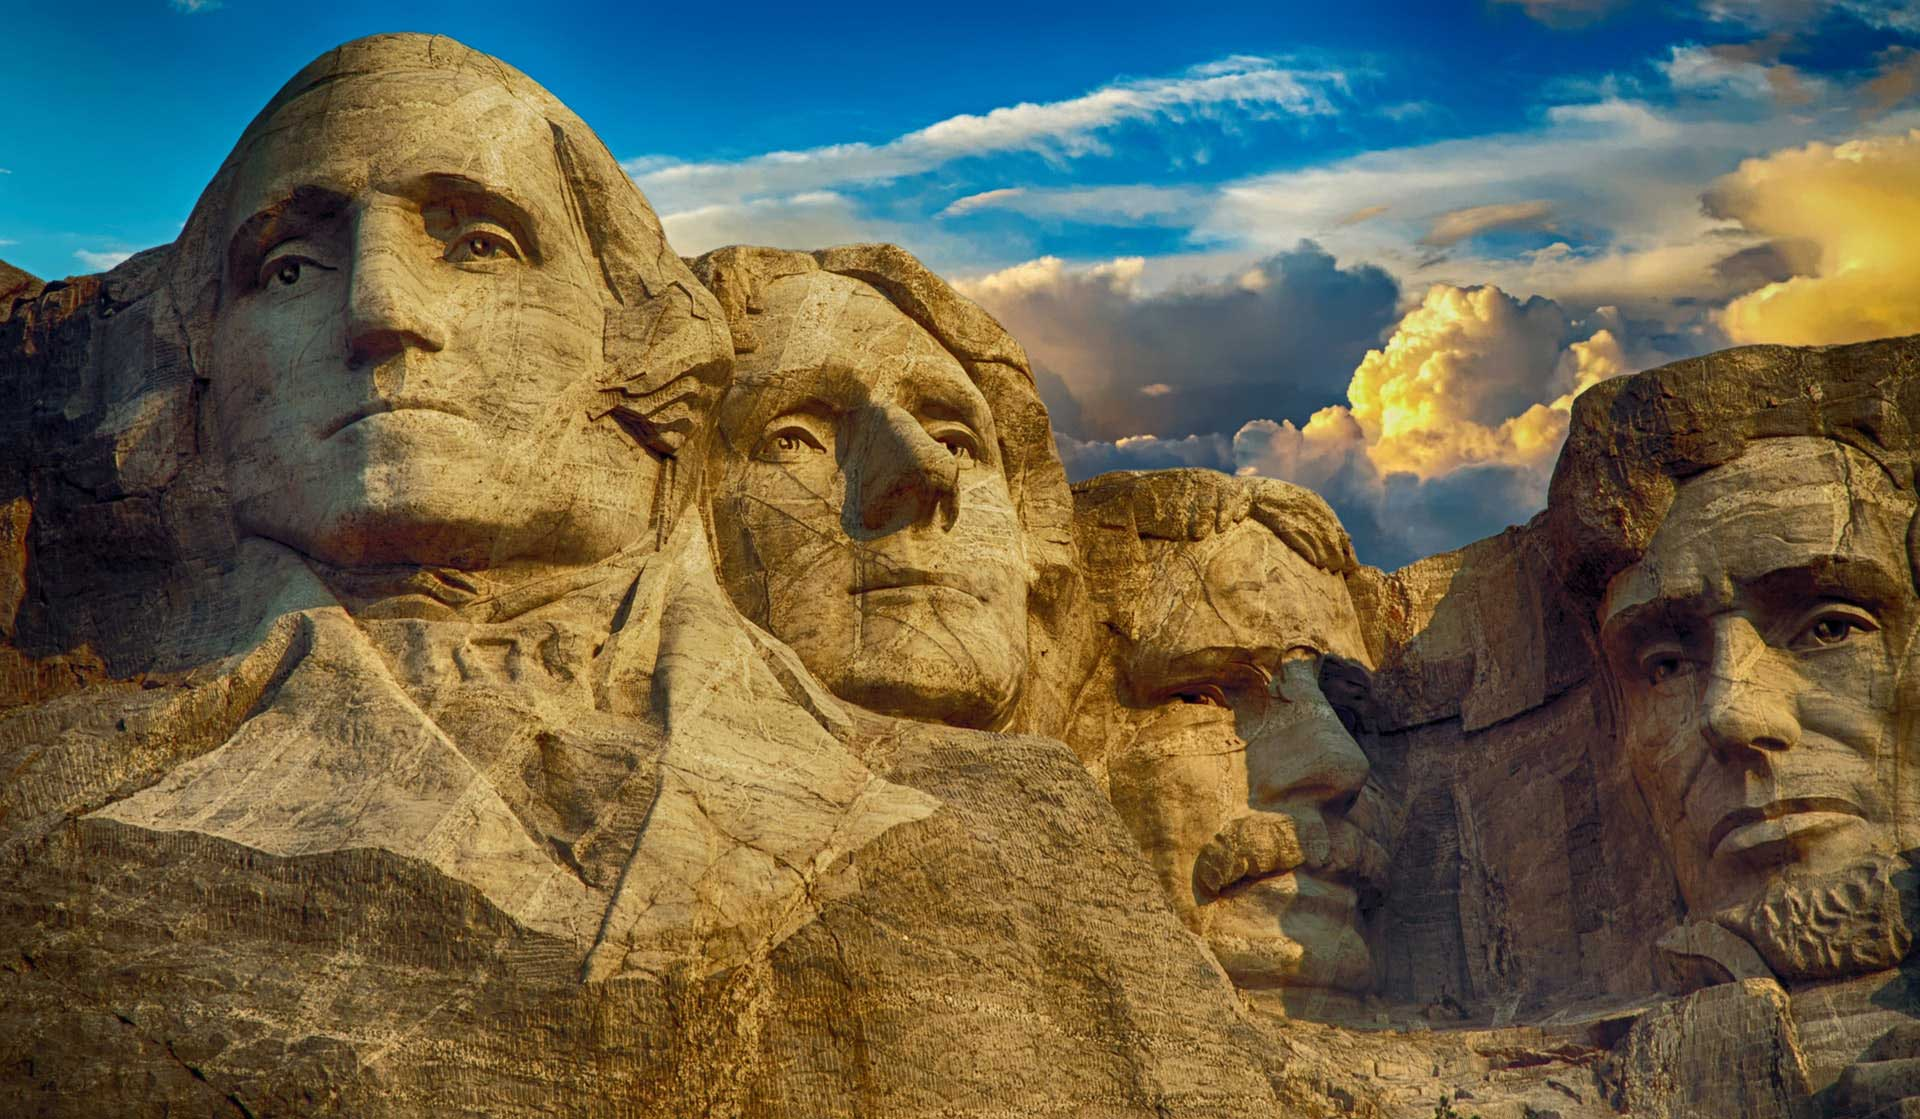 The stone faces of Mount Rushmore